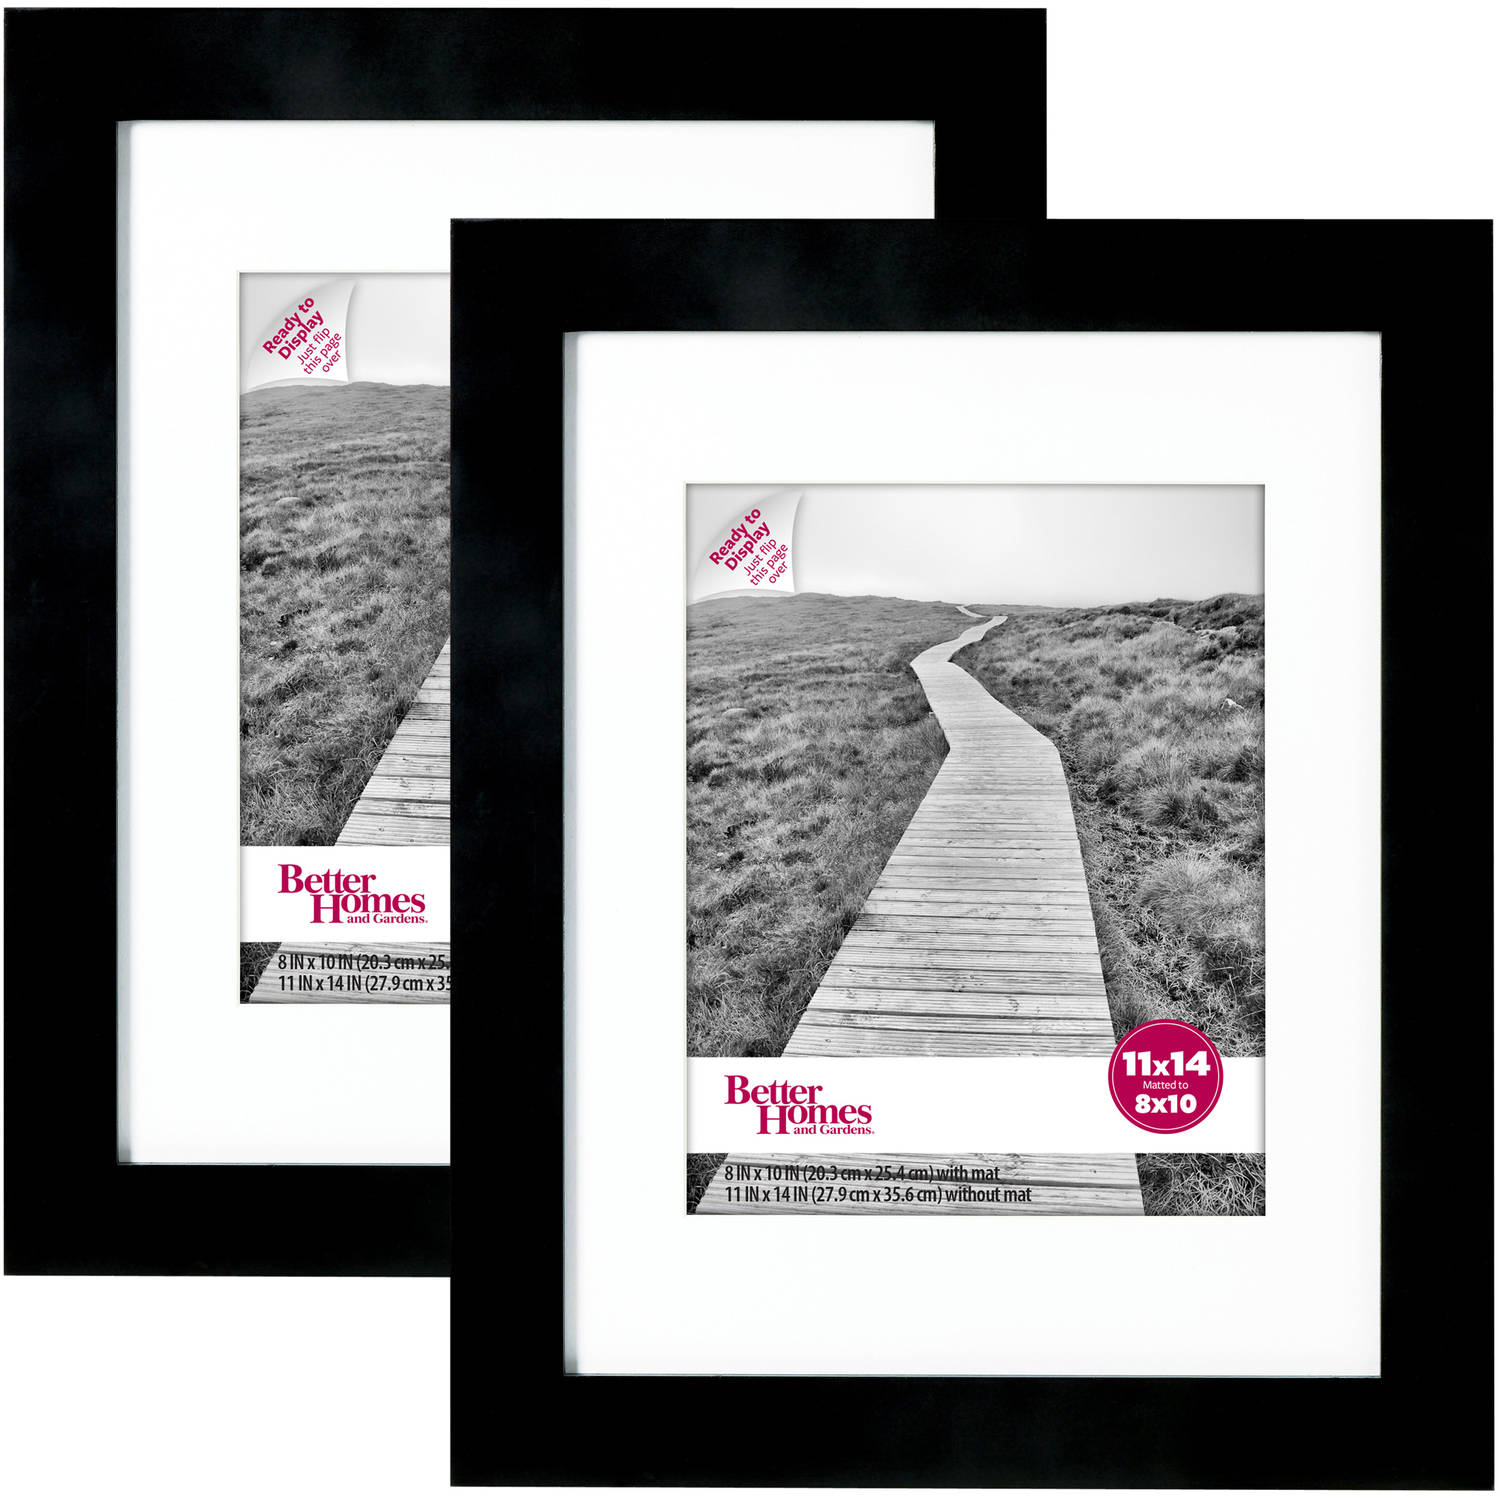 "Wide Black Gallery Frames, 11"" x 14"" matted to 8"" x 10"", 2-Pack"